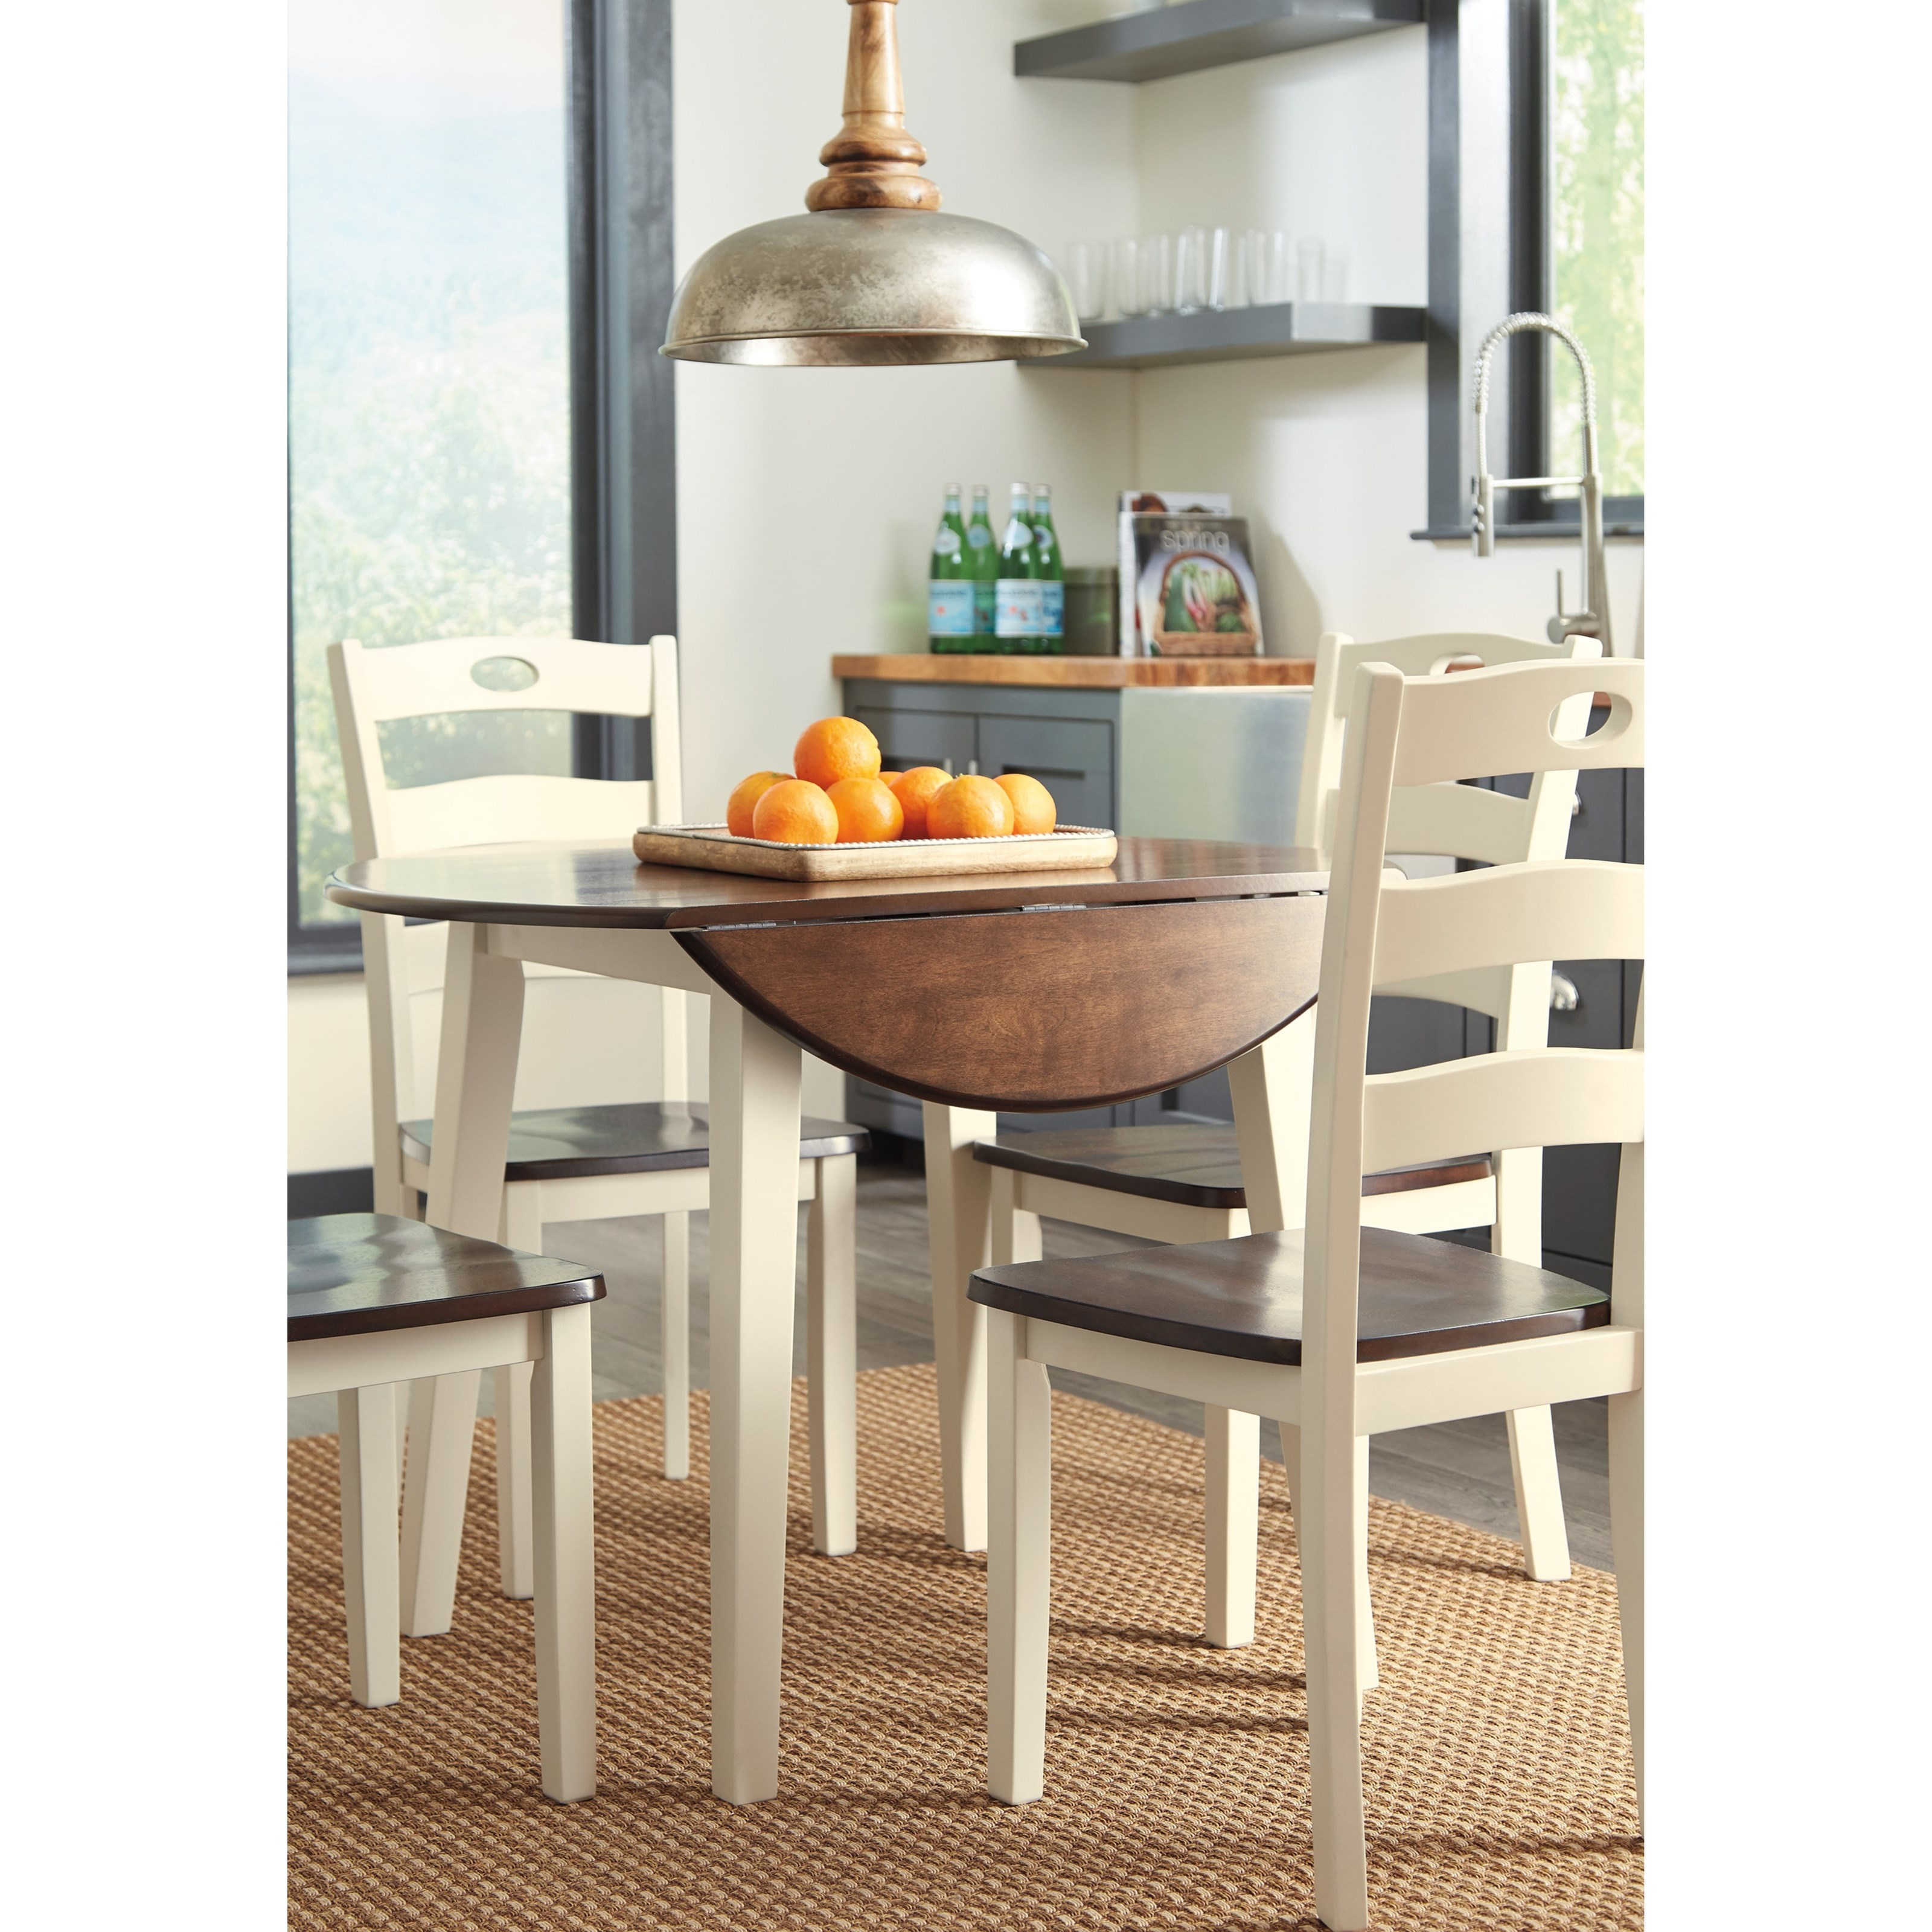 5 Piece Round Drop Leaf Table Set By Signature Design By Ashley